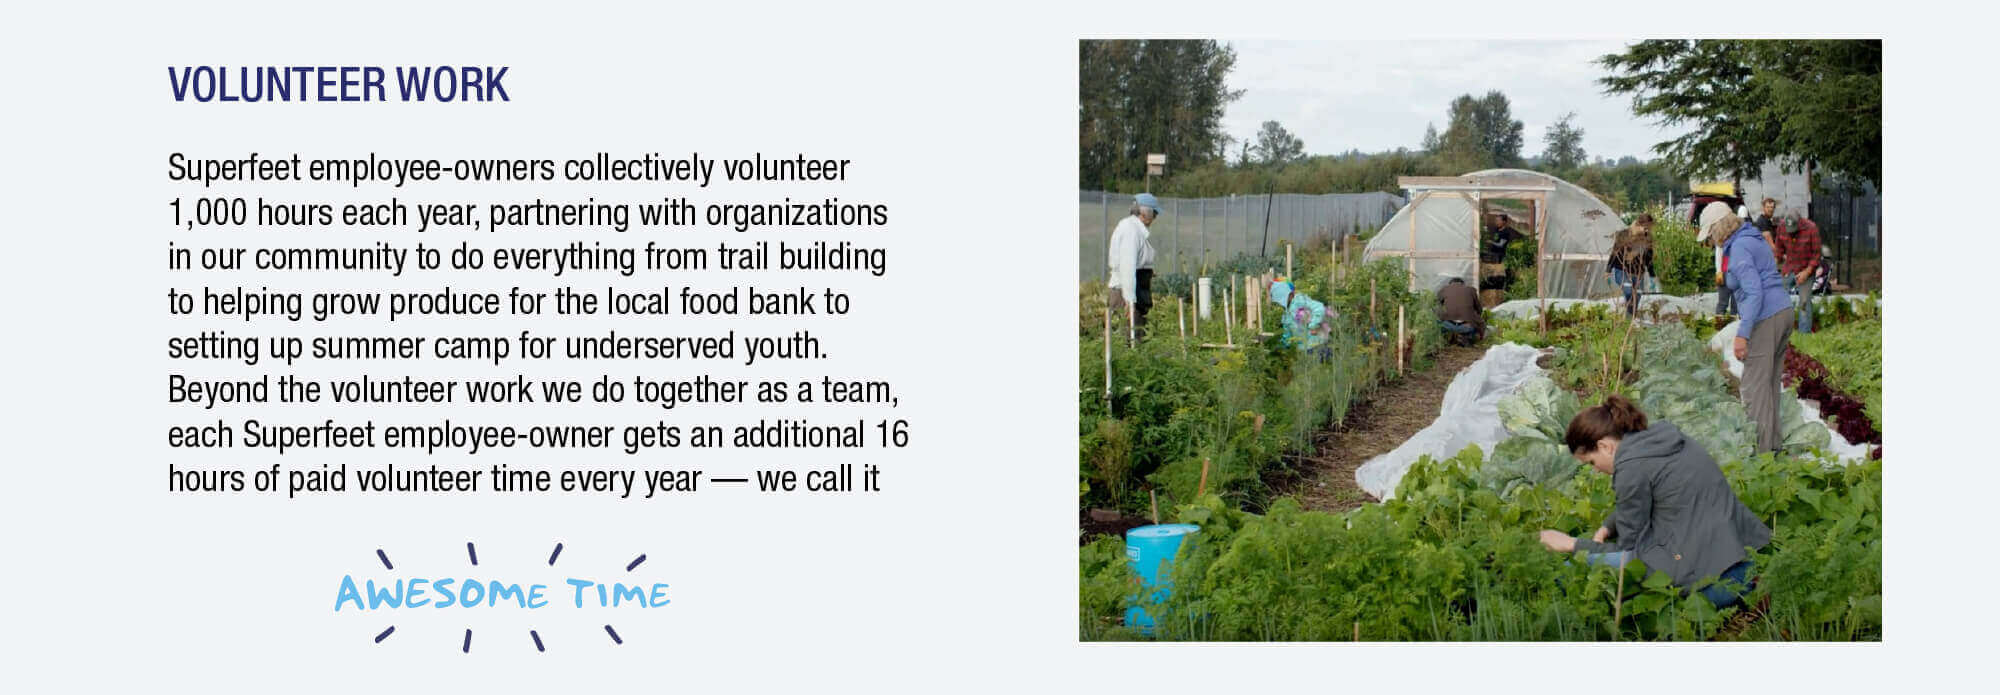 Superfeet employee-owners collectively volunteer 1,000 hours each year, partnering with organizations in our community to fo everything from trail building to helping grow produce for the local food bank.